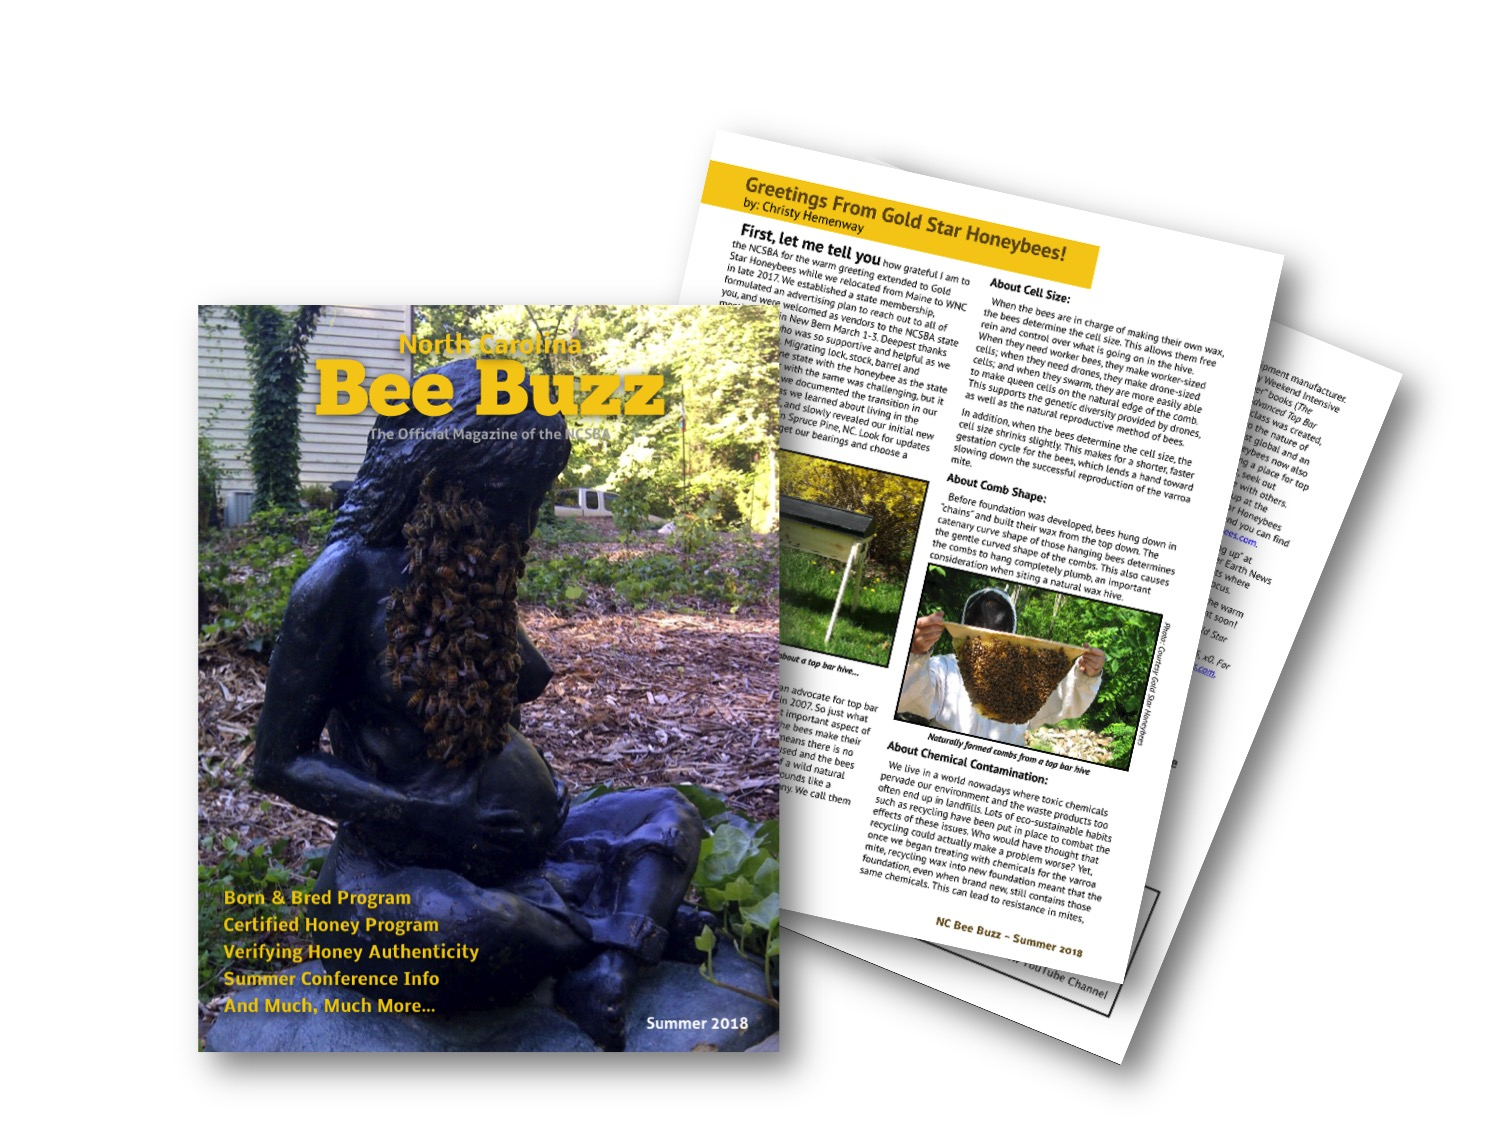 Article by Christy Hemenway, of Gold Star Honeybees, featured in North Carolina Bee Buzz Magazine!